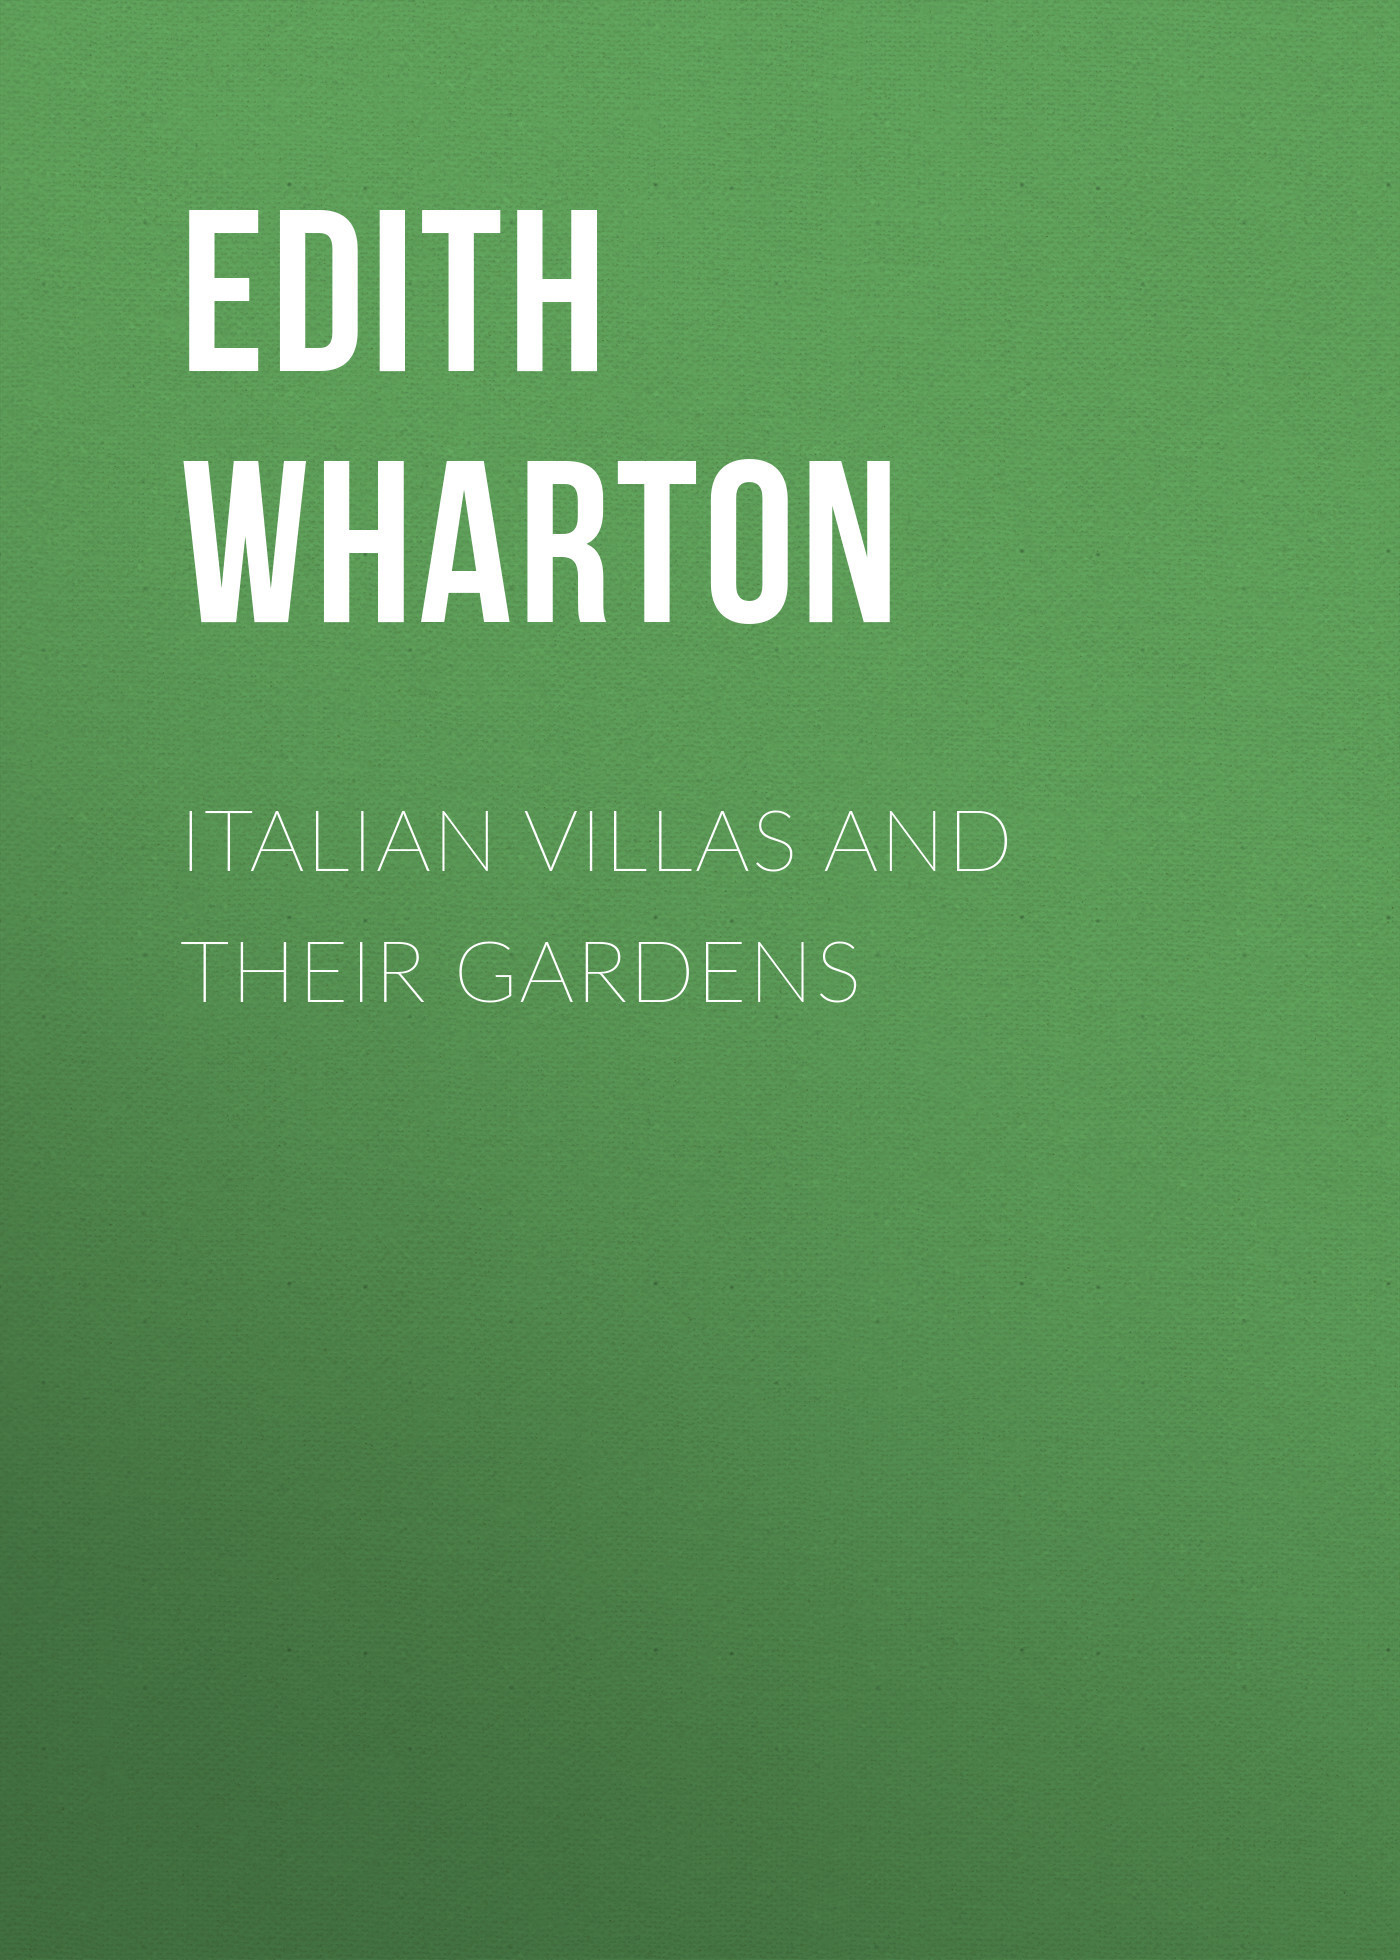 Edith Wharton Italian Villas and Their Gardens doershow african women italian shoes and bag set decorated with rhinestone italy shoe and bag set italian shoe with bag dk1 6